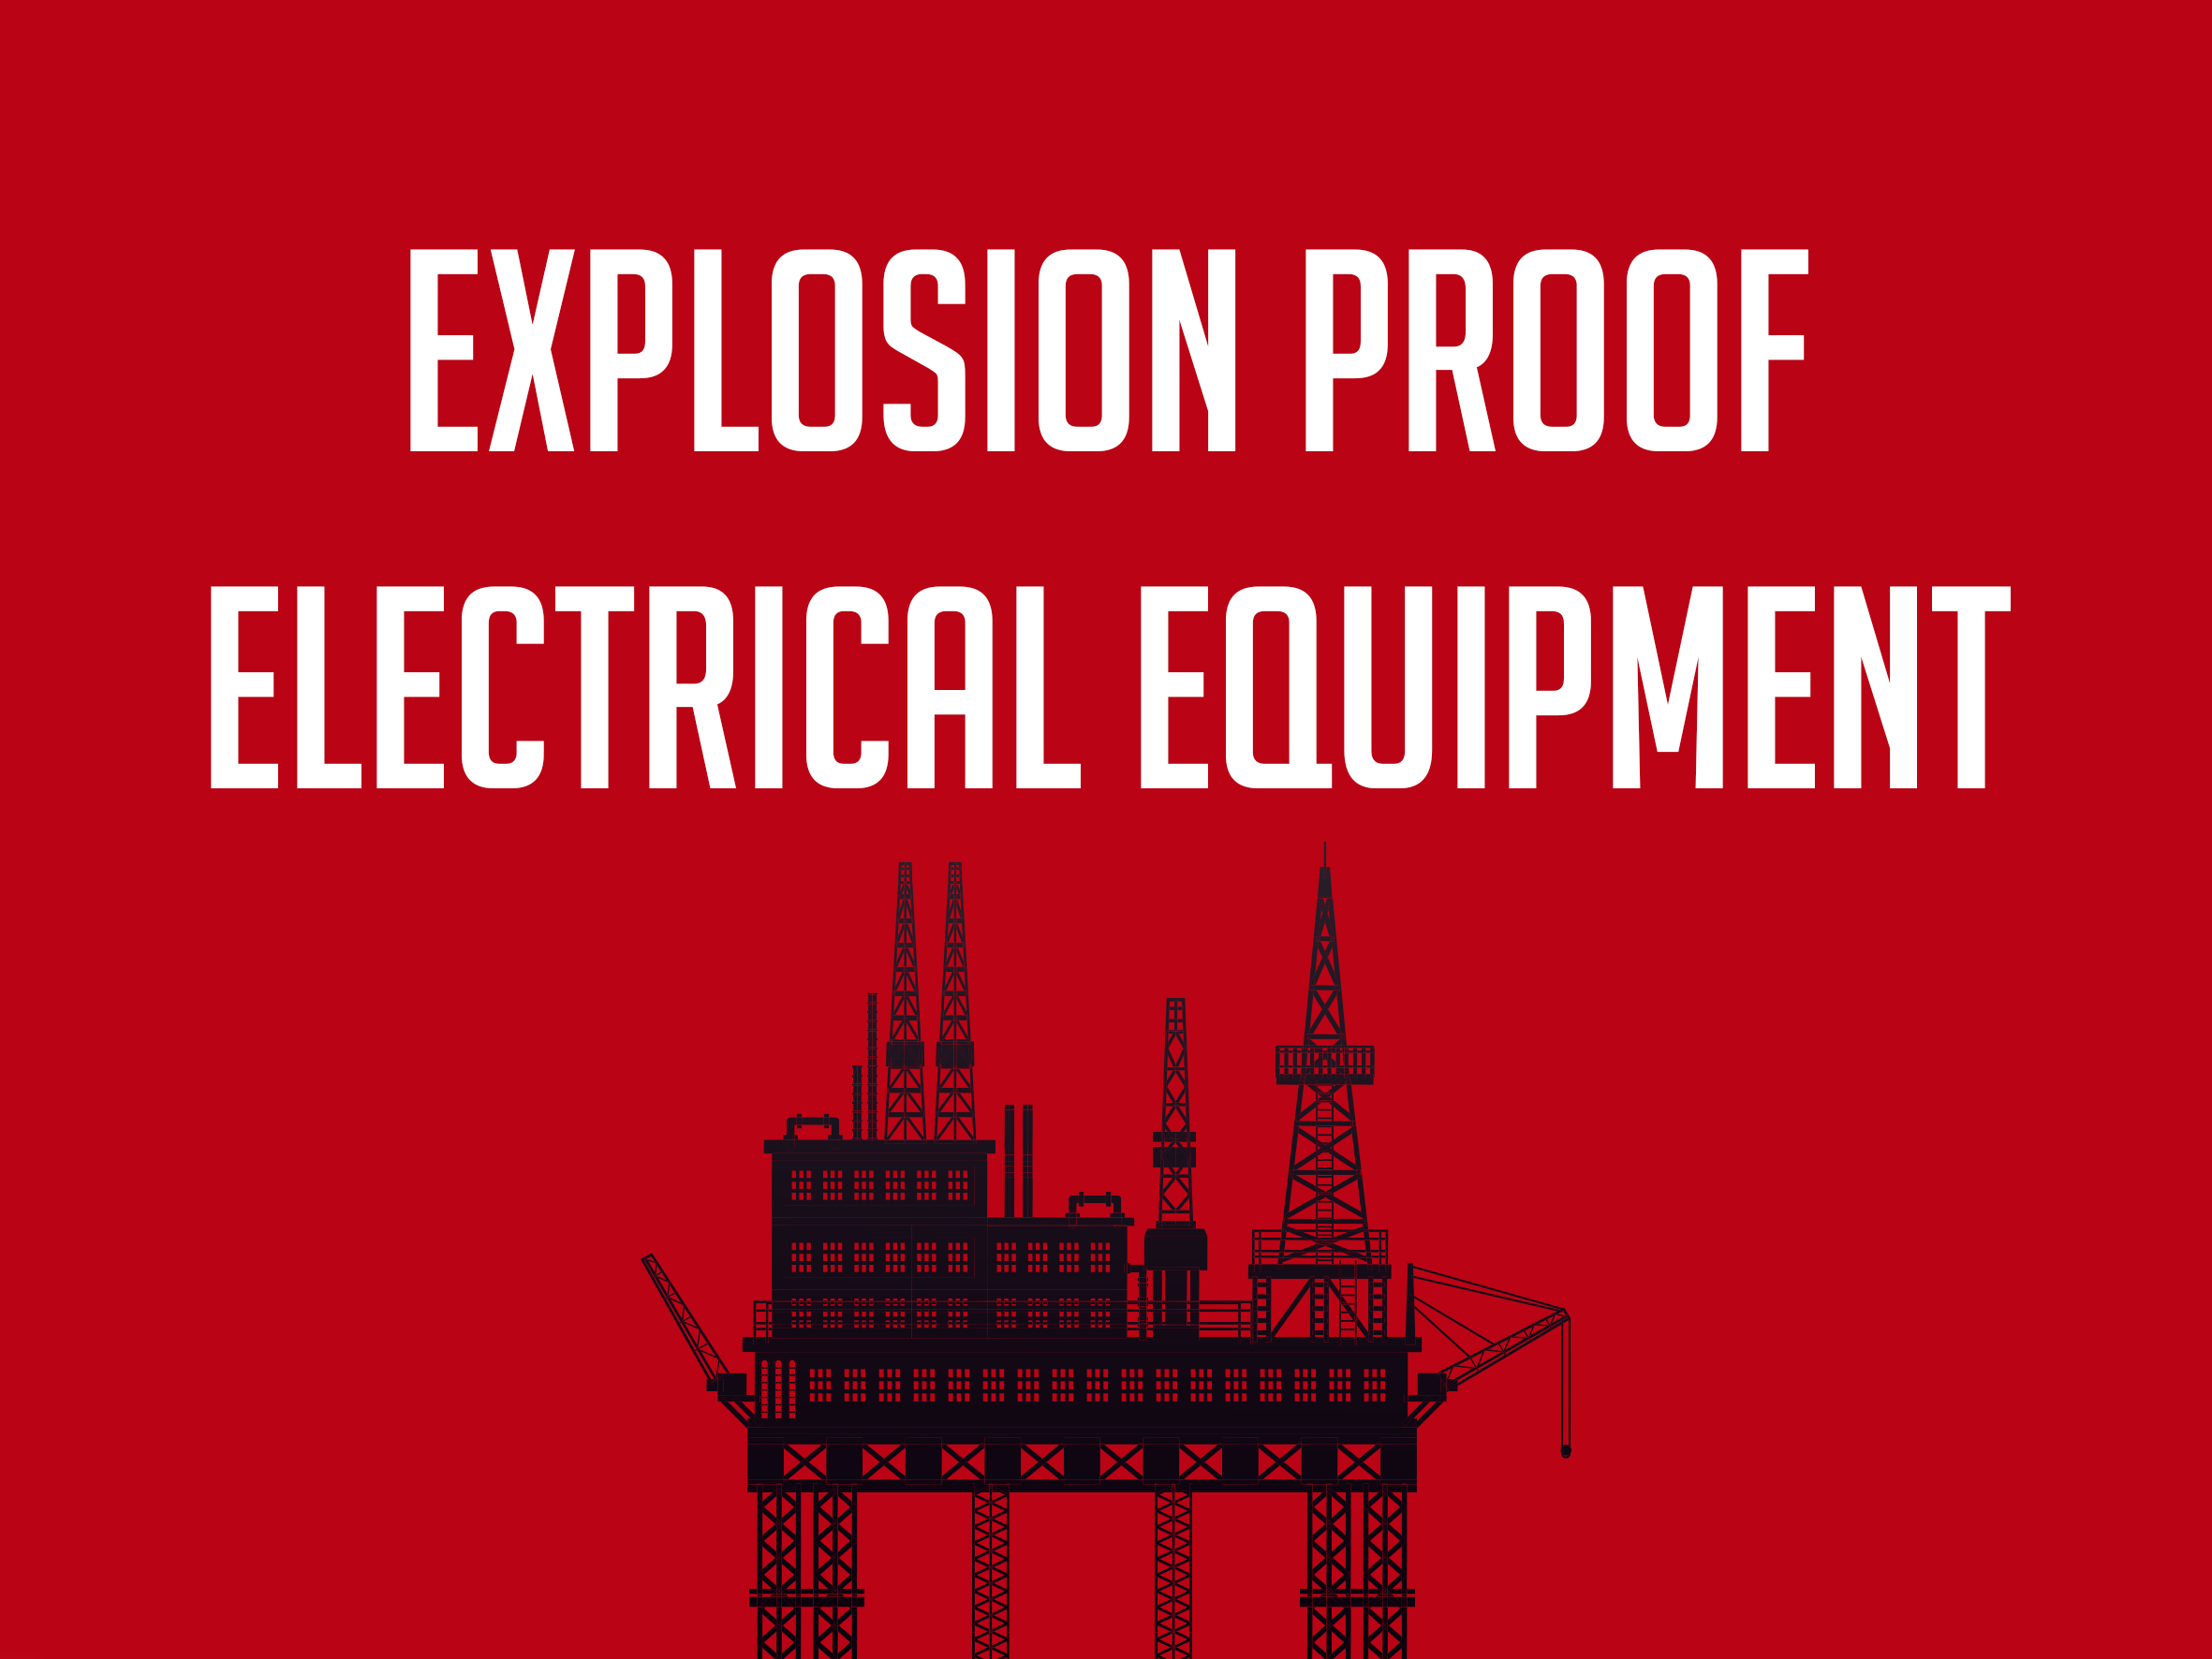 EXPLOSION PROOF ELECTRICAL EQUIPMENT